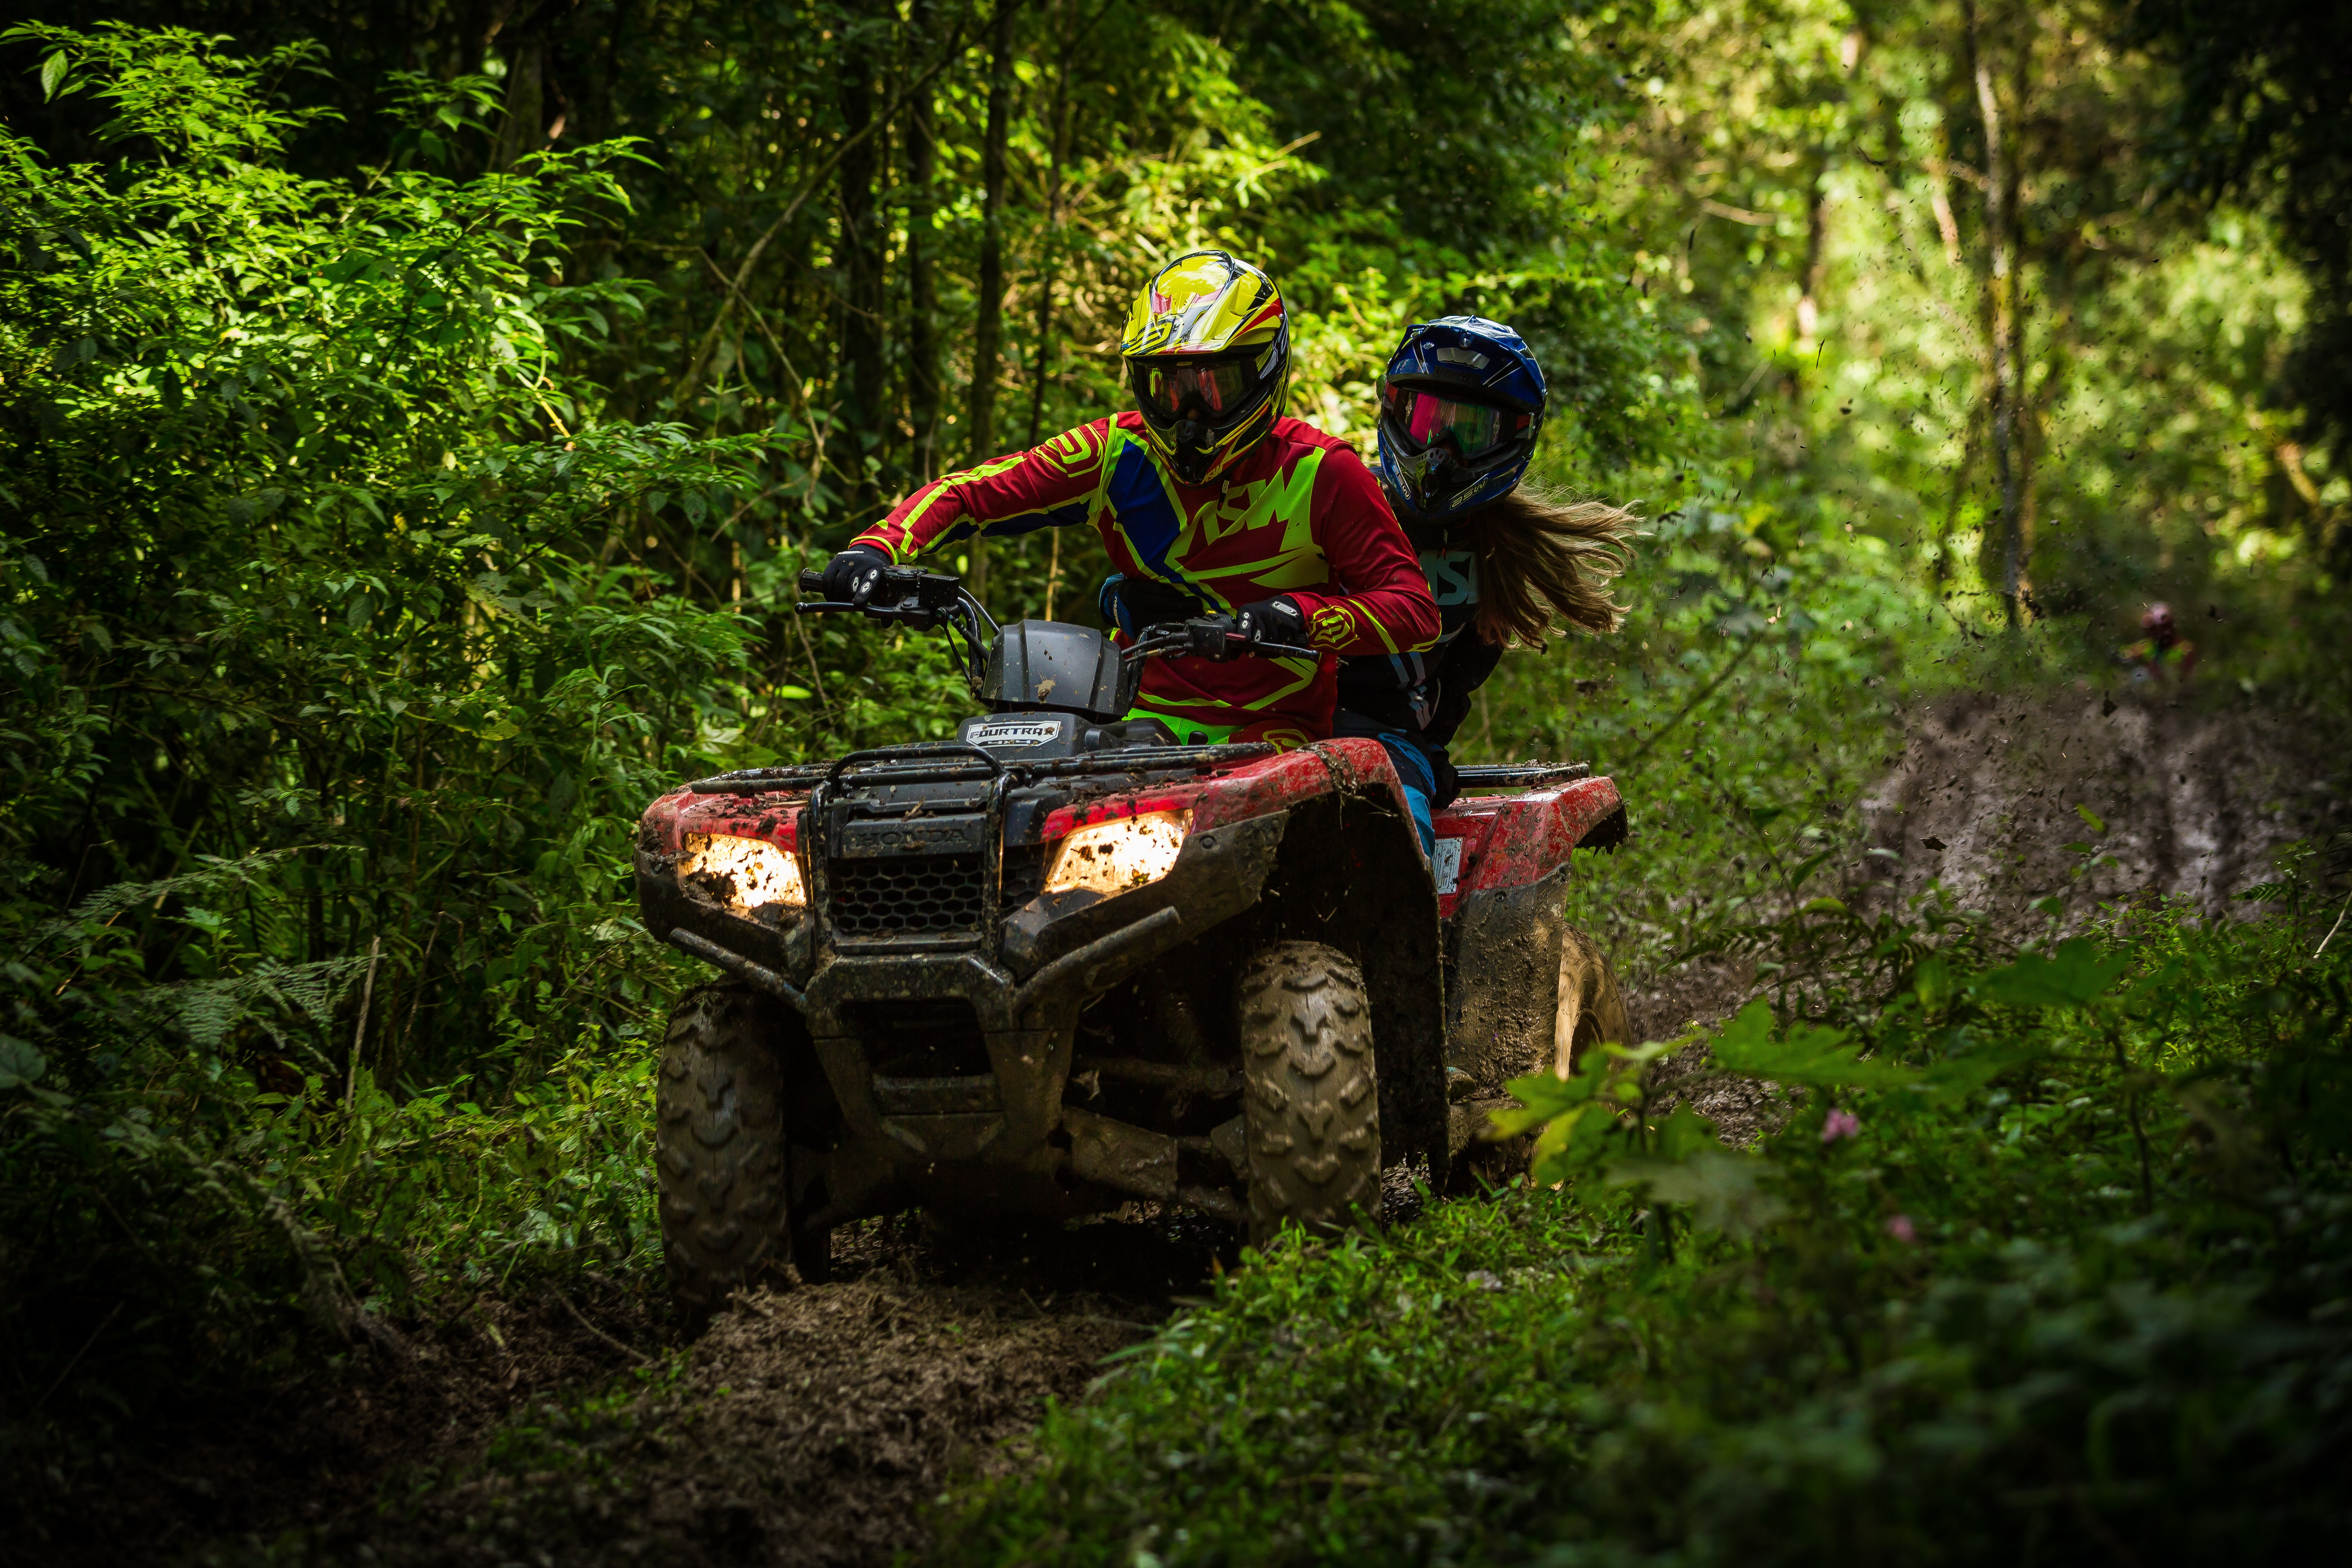 man and woman riding on ATV